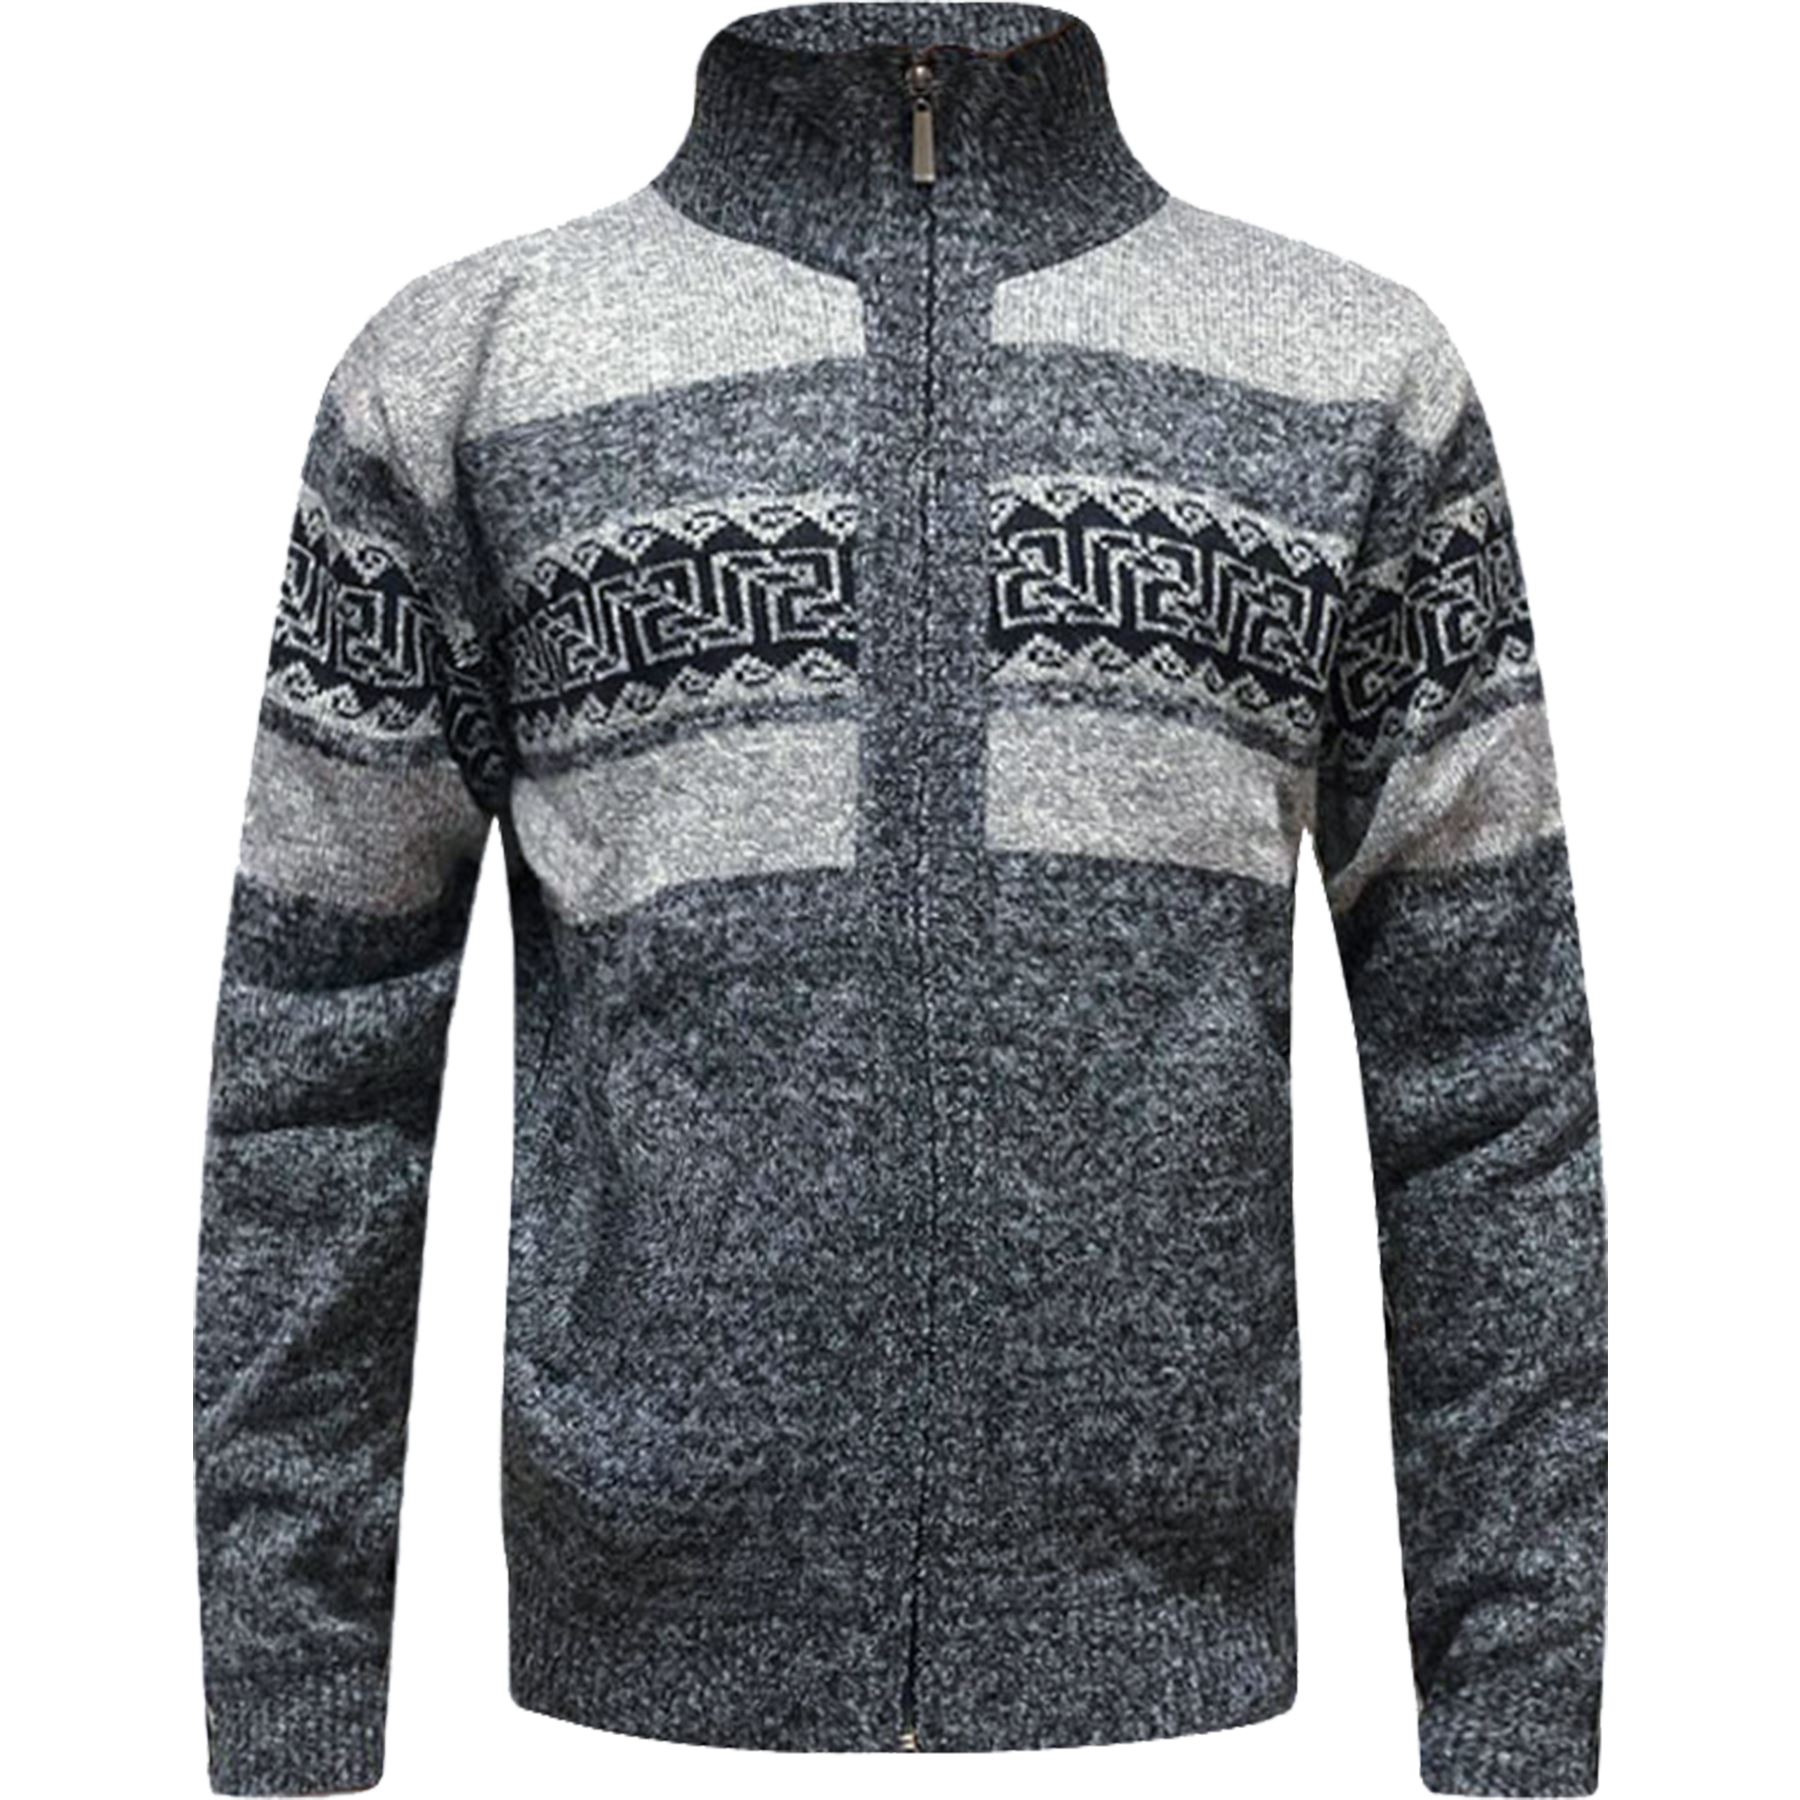 Mens-Zip-Up-Aztec-Fleece-Lined-Knitted-Cardigan-Xmas-Argyle-Wool-Blend-Jumper thumbnail 7